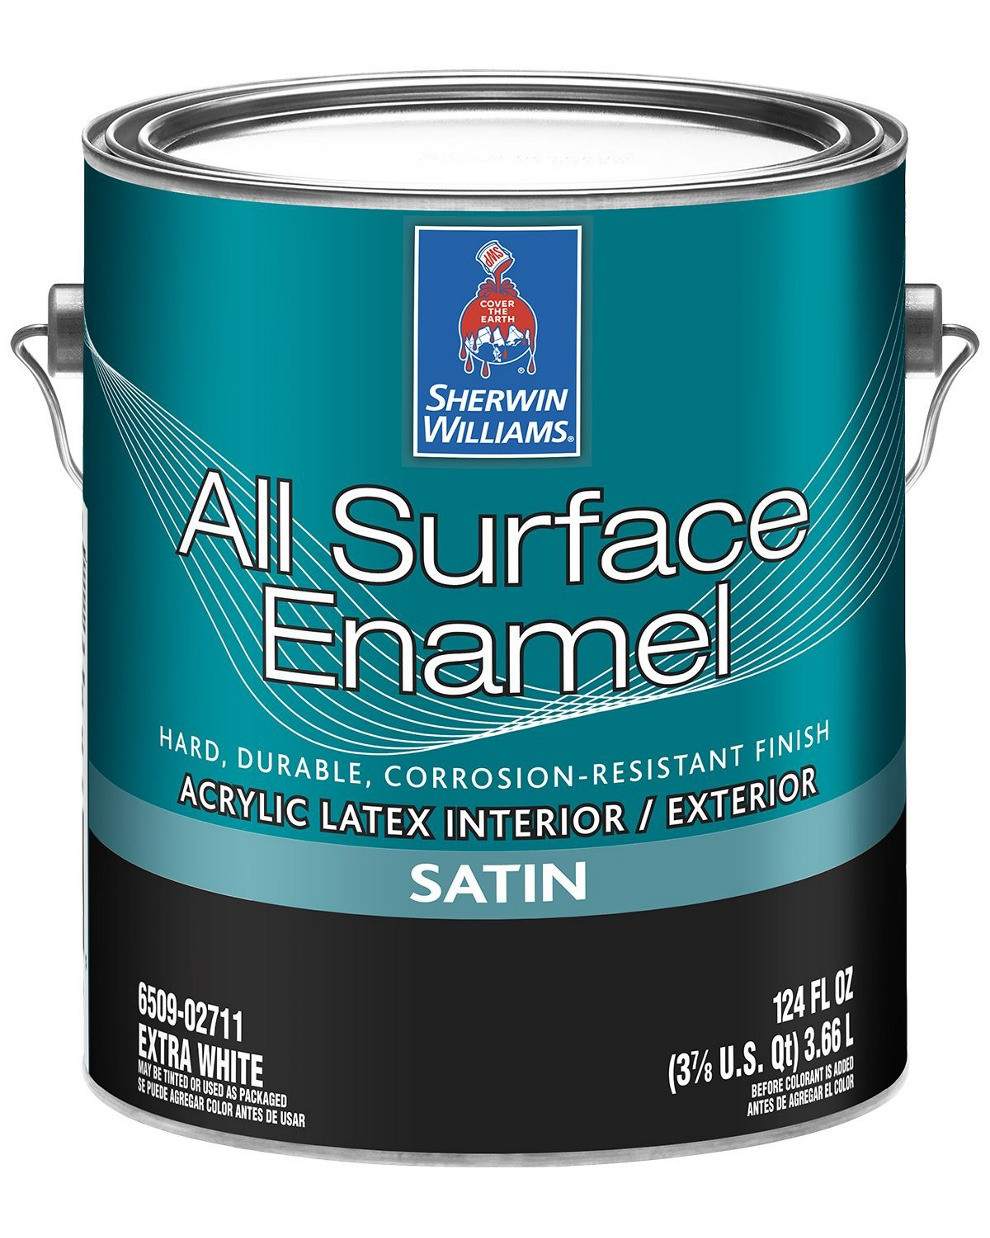 Эмаль All Surface Enamel Satin Sherwin-Williams экстра белая полуматовая, 3,66л (ол сурфейс шервин вильямс)